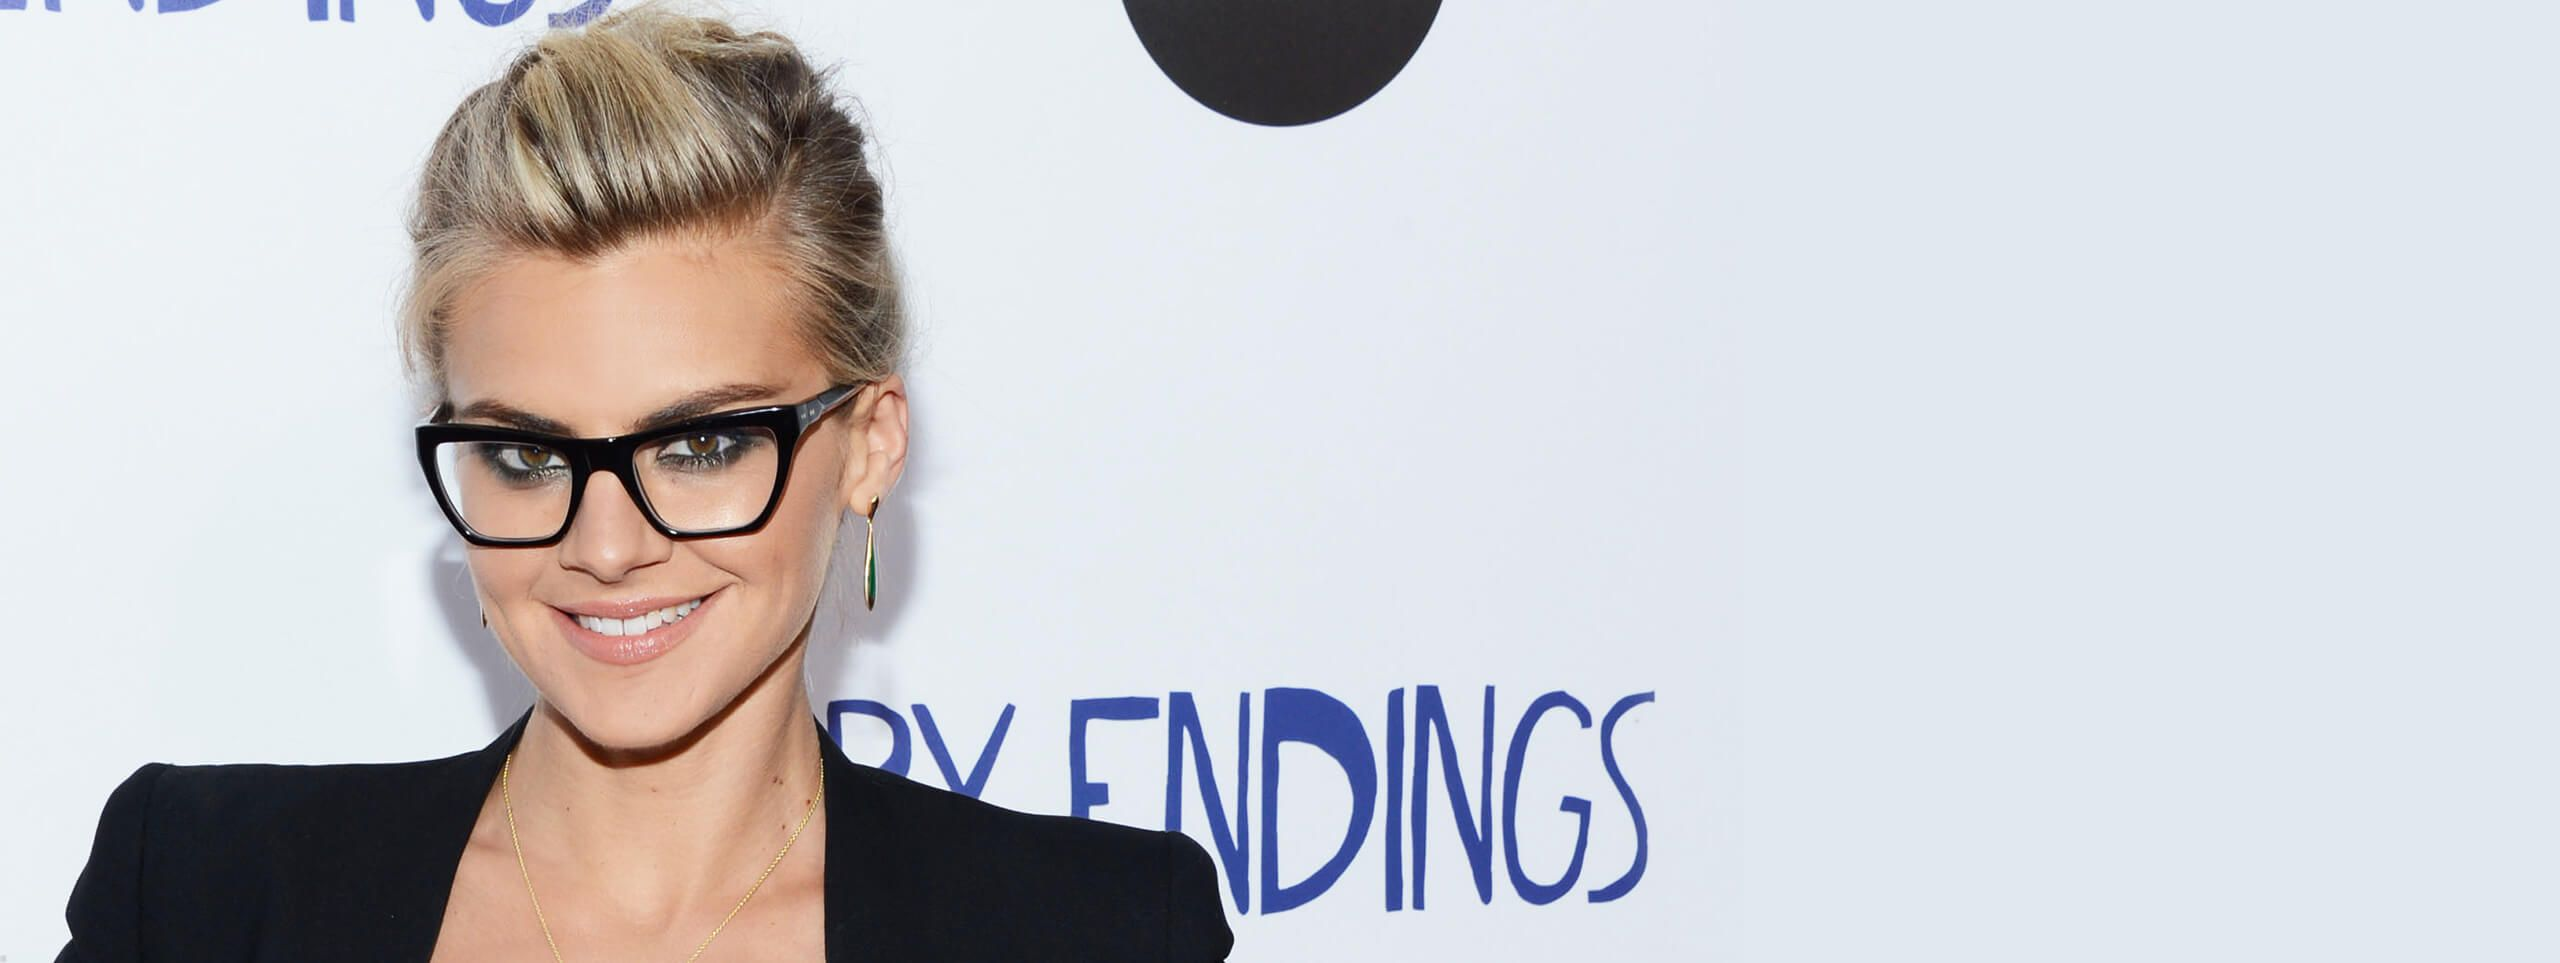 Actress Eliza Coupe wears updo hairstyle with glasses